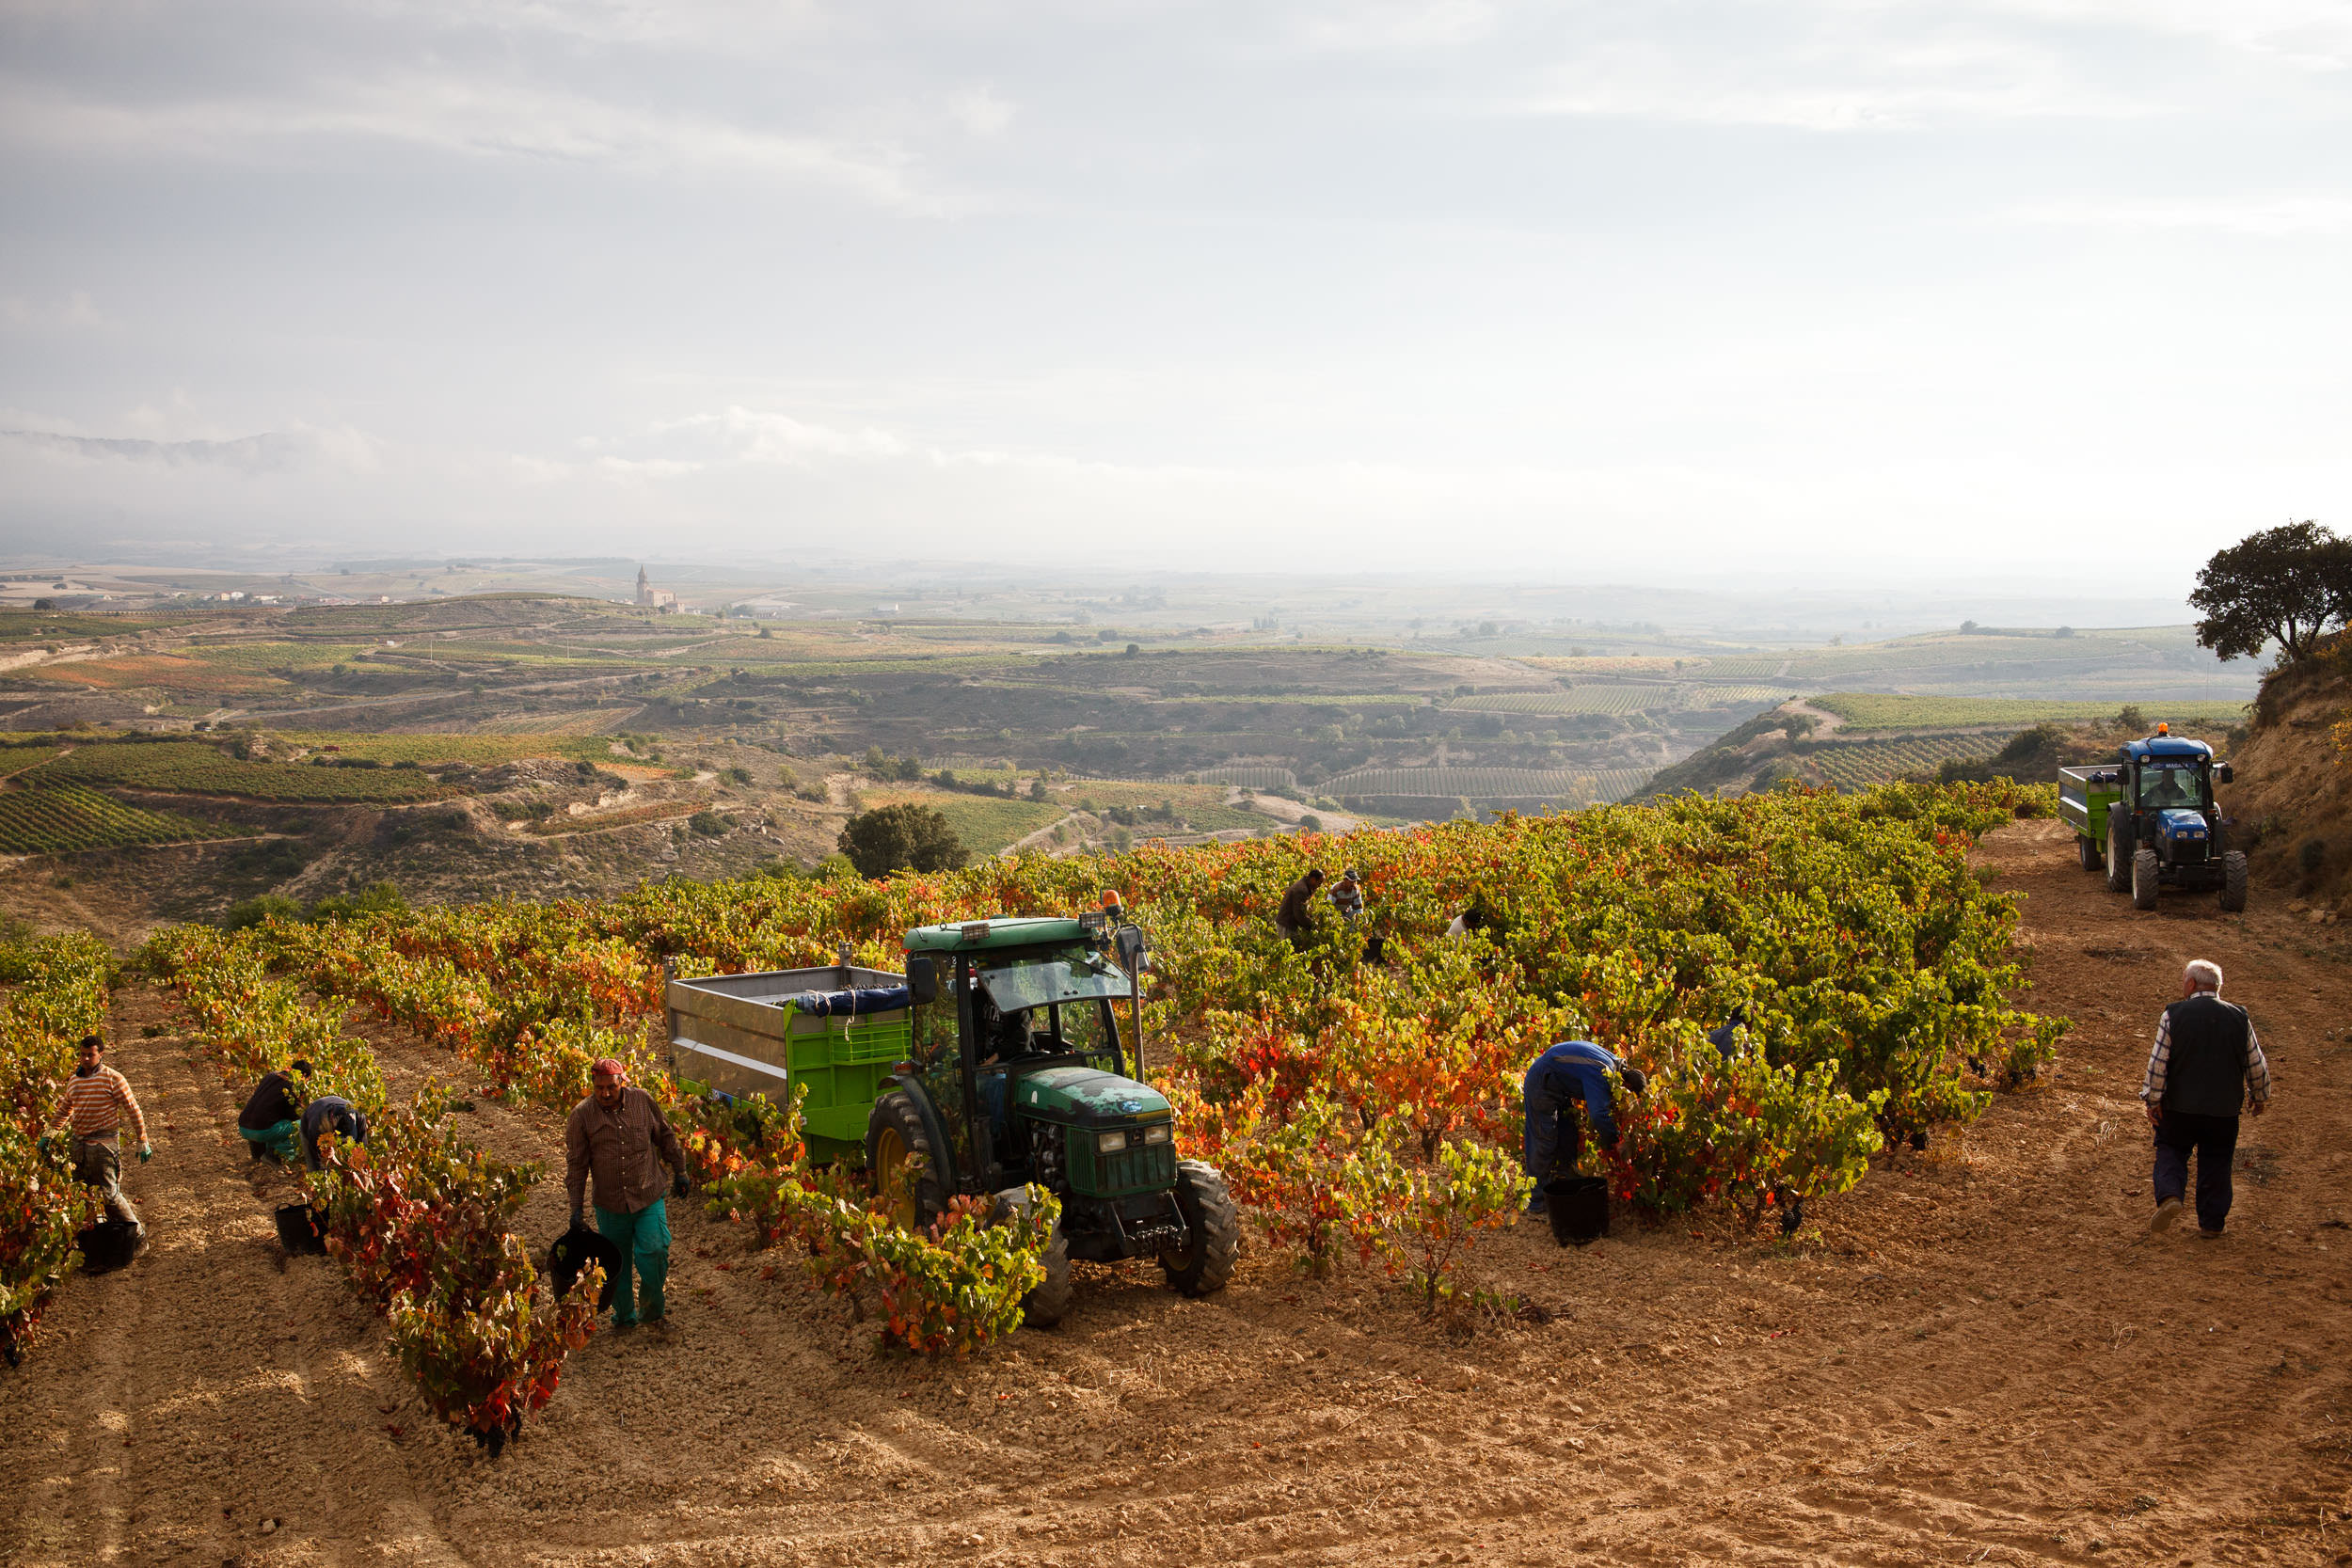 Professional Commercial Photography La Rioja Basque Country Spain - James Sturcke - sturcke.org_014.jpg